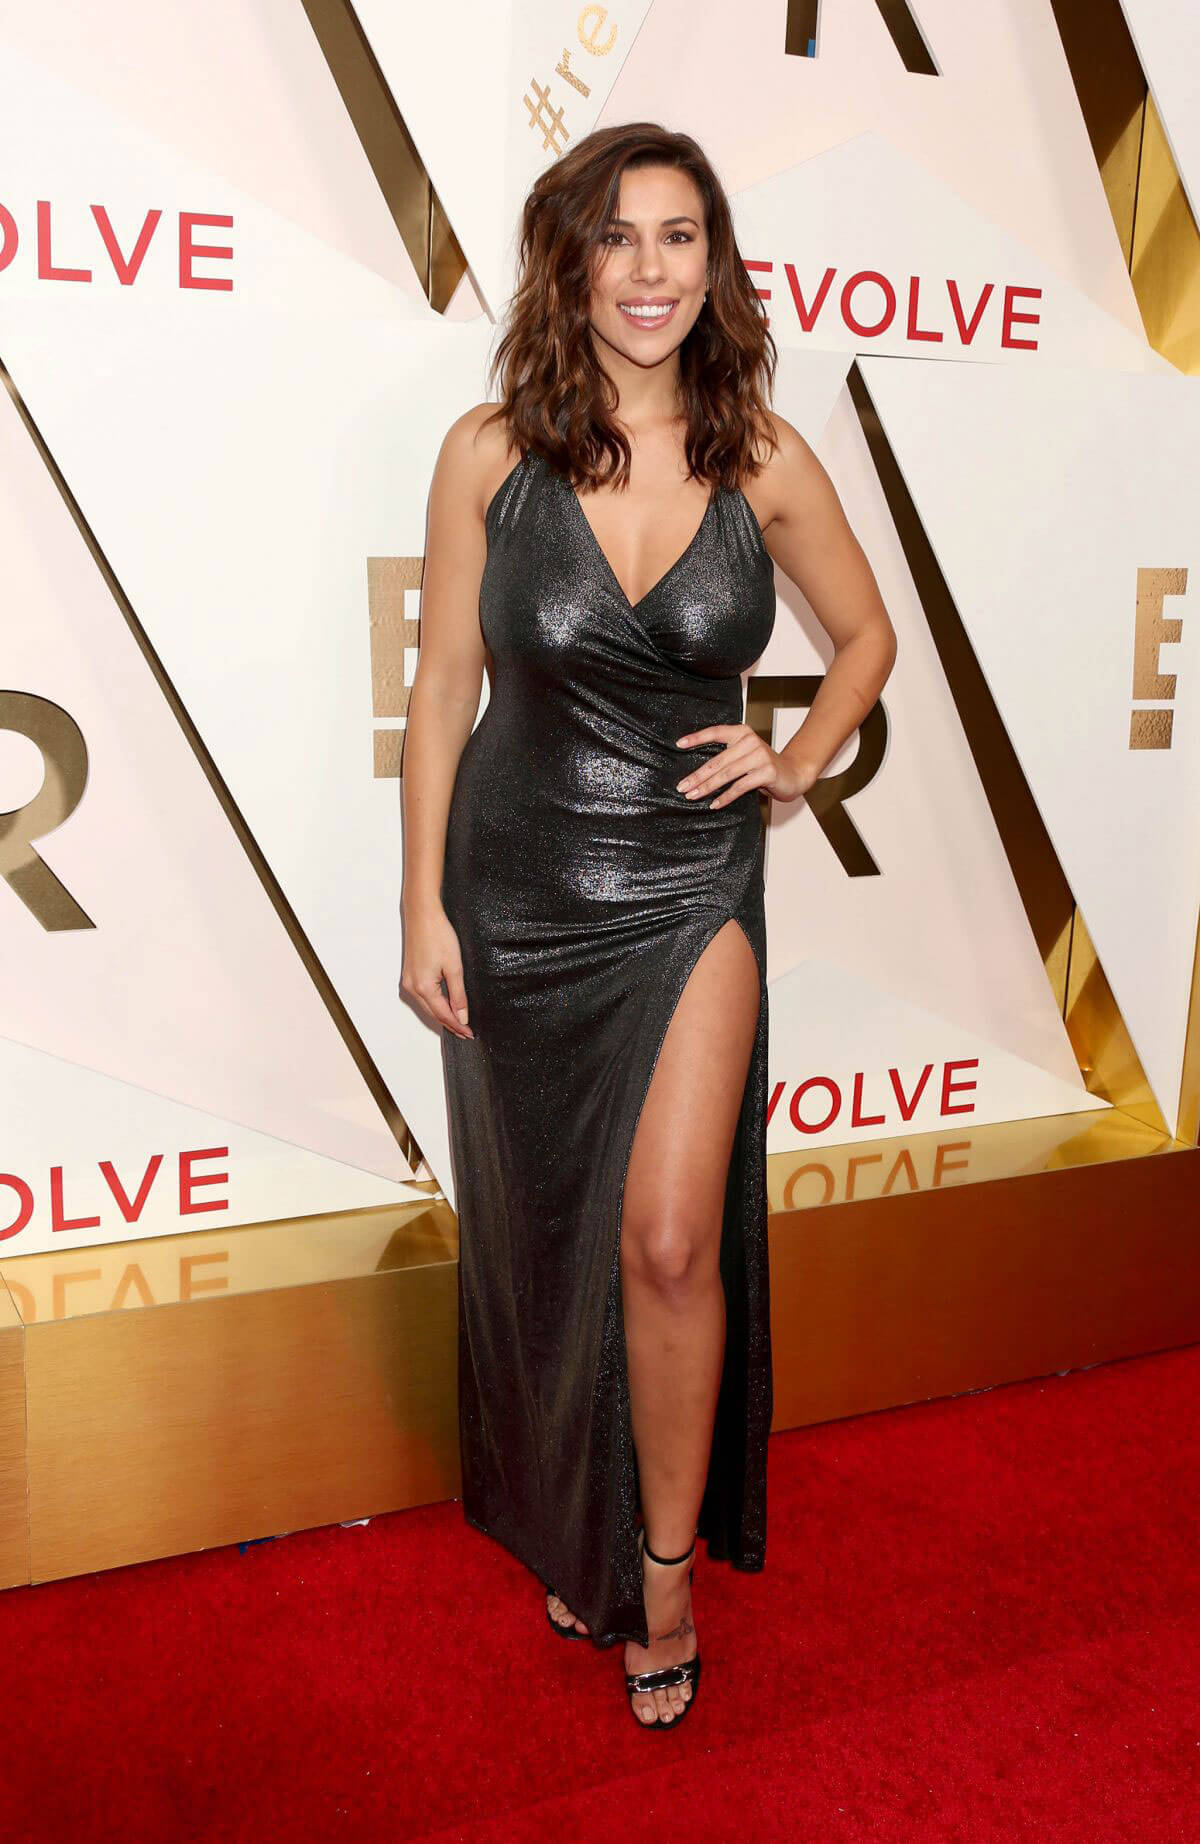 Devin Brugman shows off Legs at #revolveawards in Hollywood